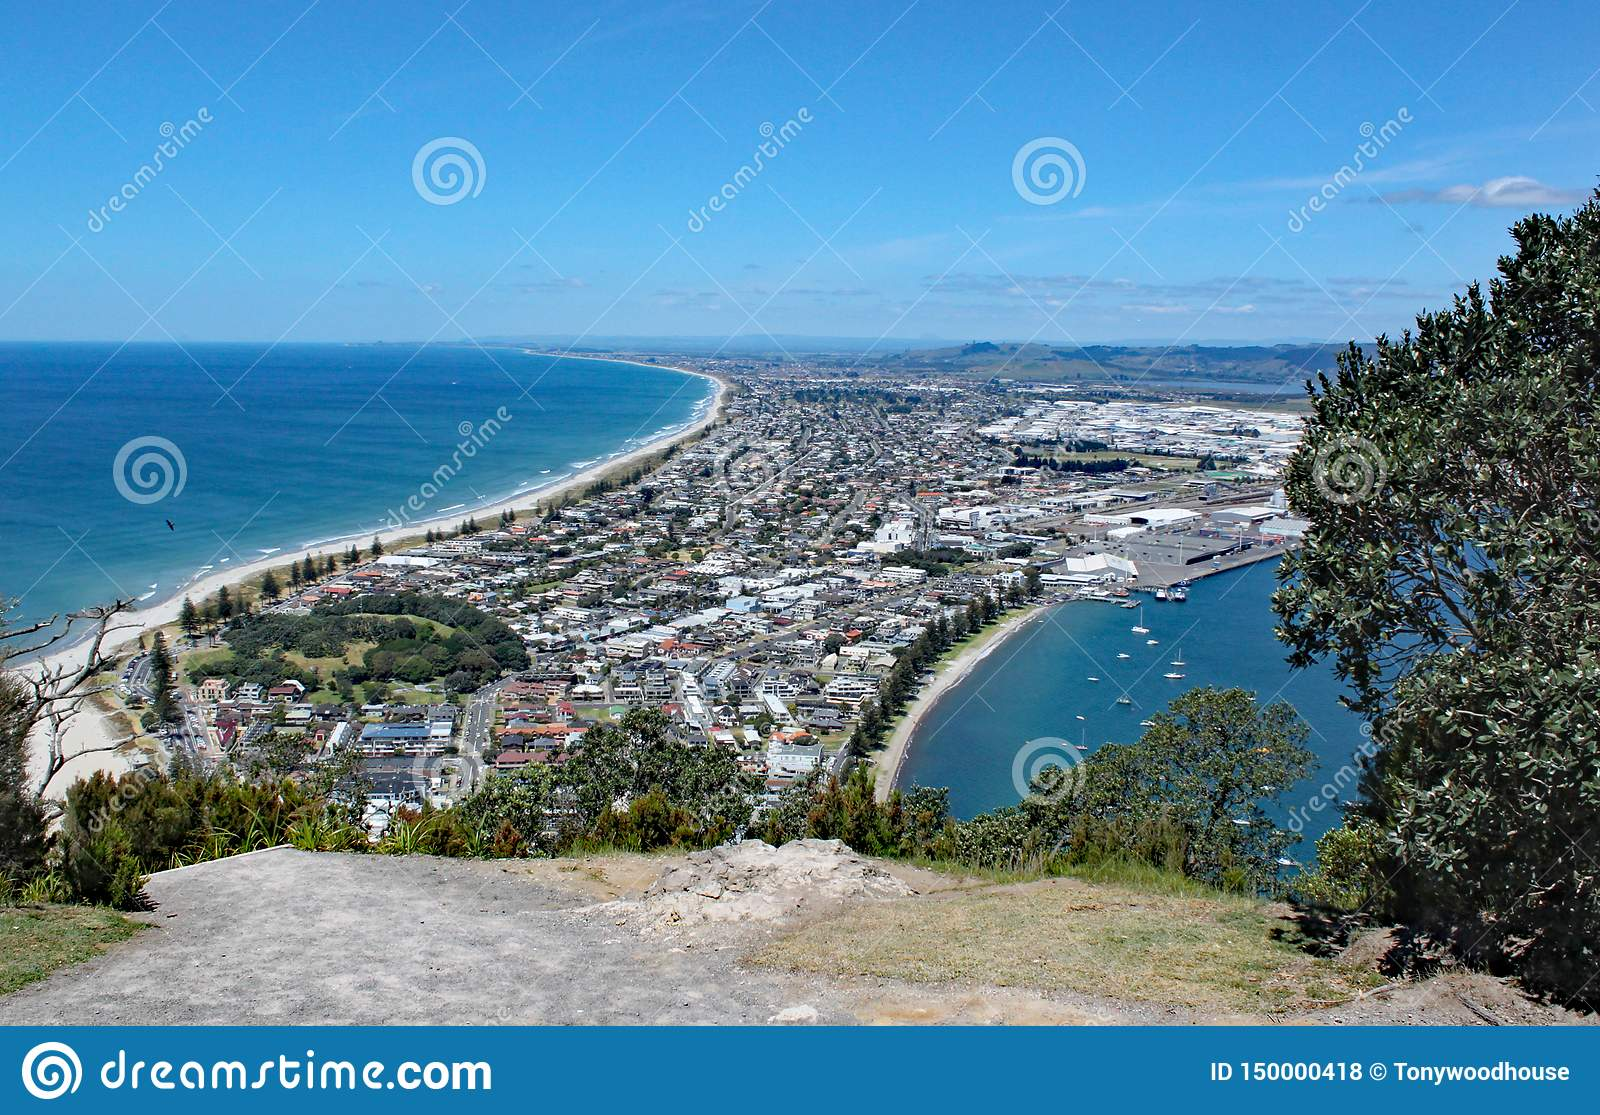 View of Tauranga from Mount Maunganui in New Zealand. Many people are on the beach enjoying the perfect weather